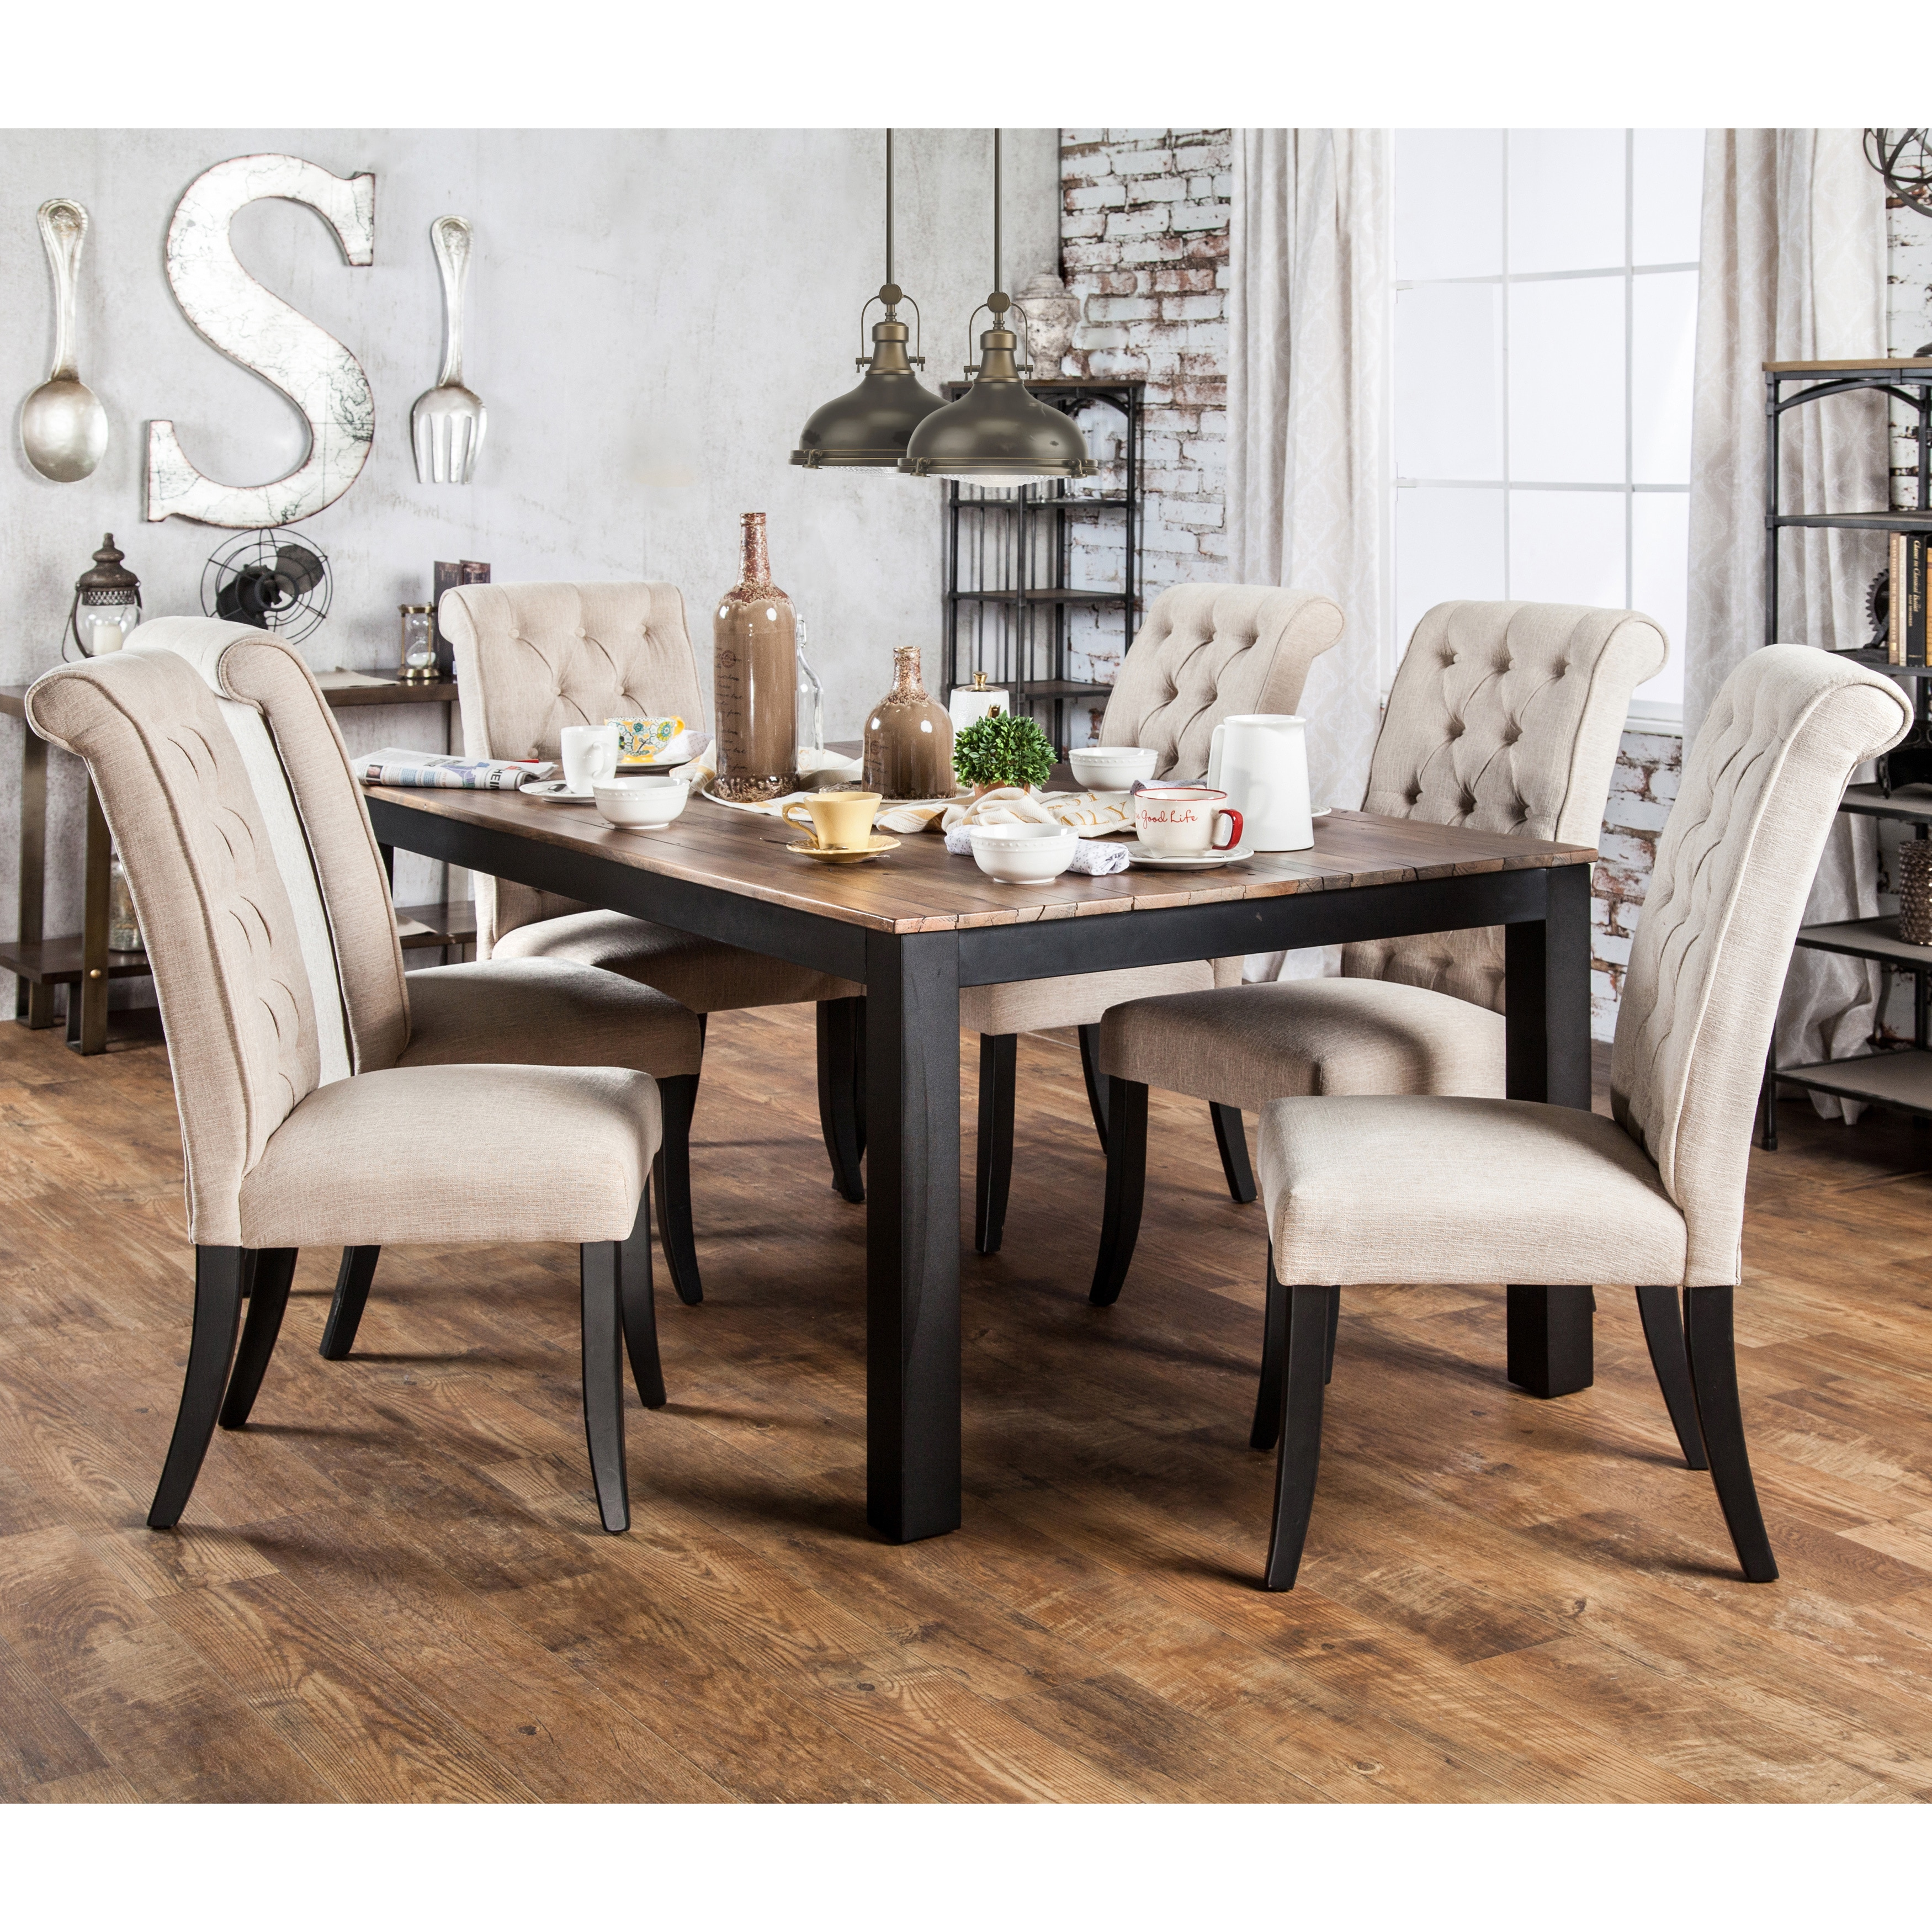 Copper Grove Bogs Mountain Rustic Two Tone Dining Table Black